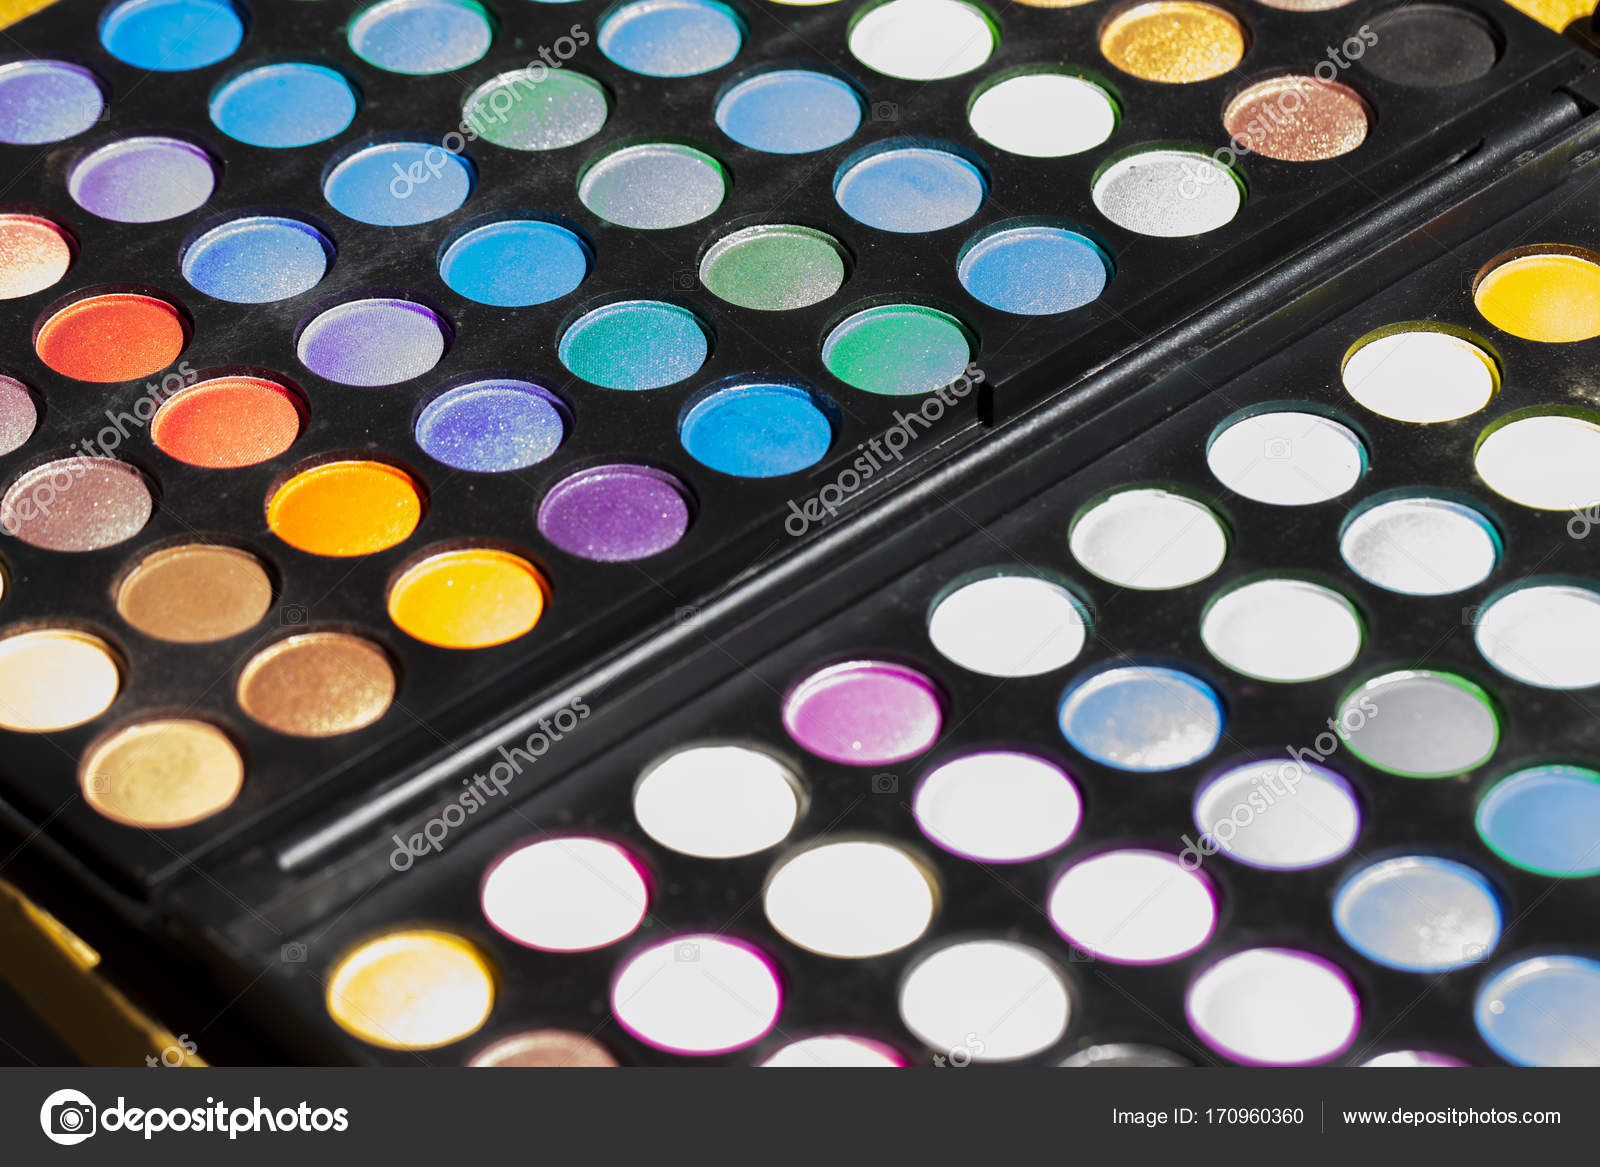 Colorful eyeshadow palette  Makeup background  Makeup texture     Makeup background  Makeup texture Horizontal     Photo by shellexx